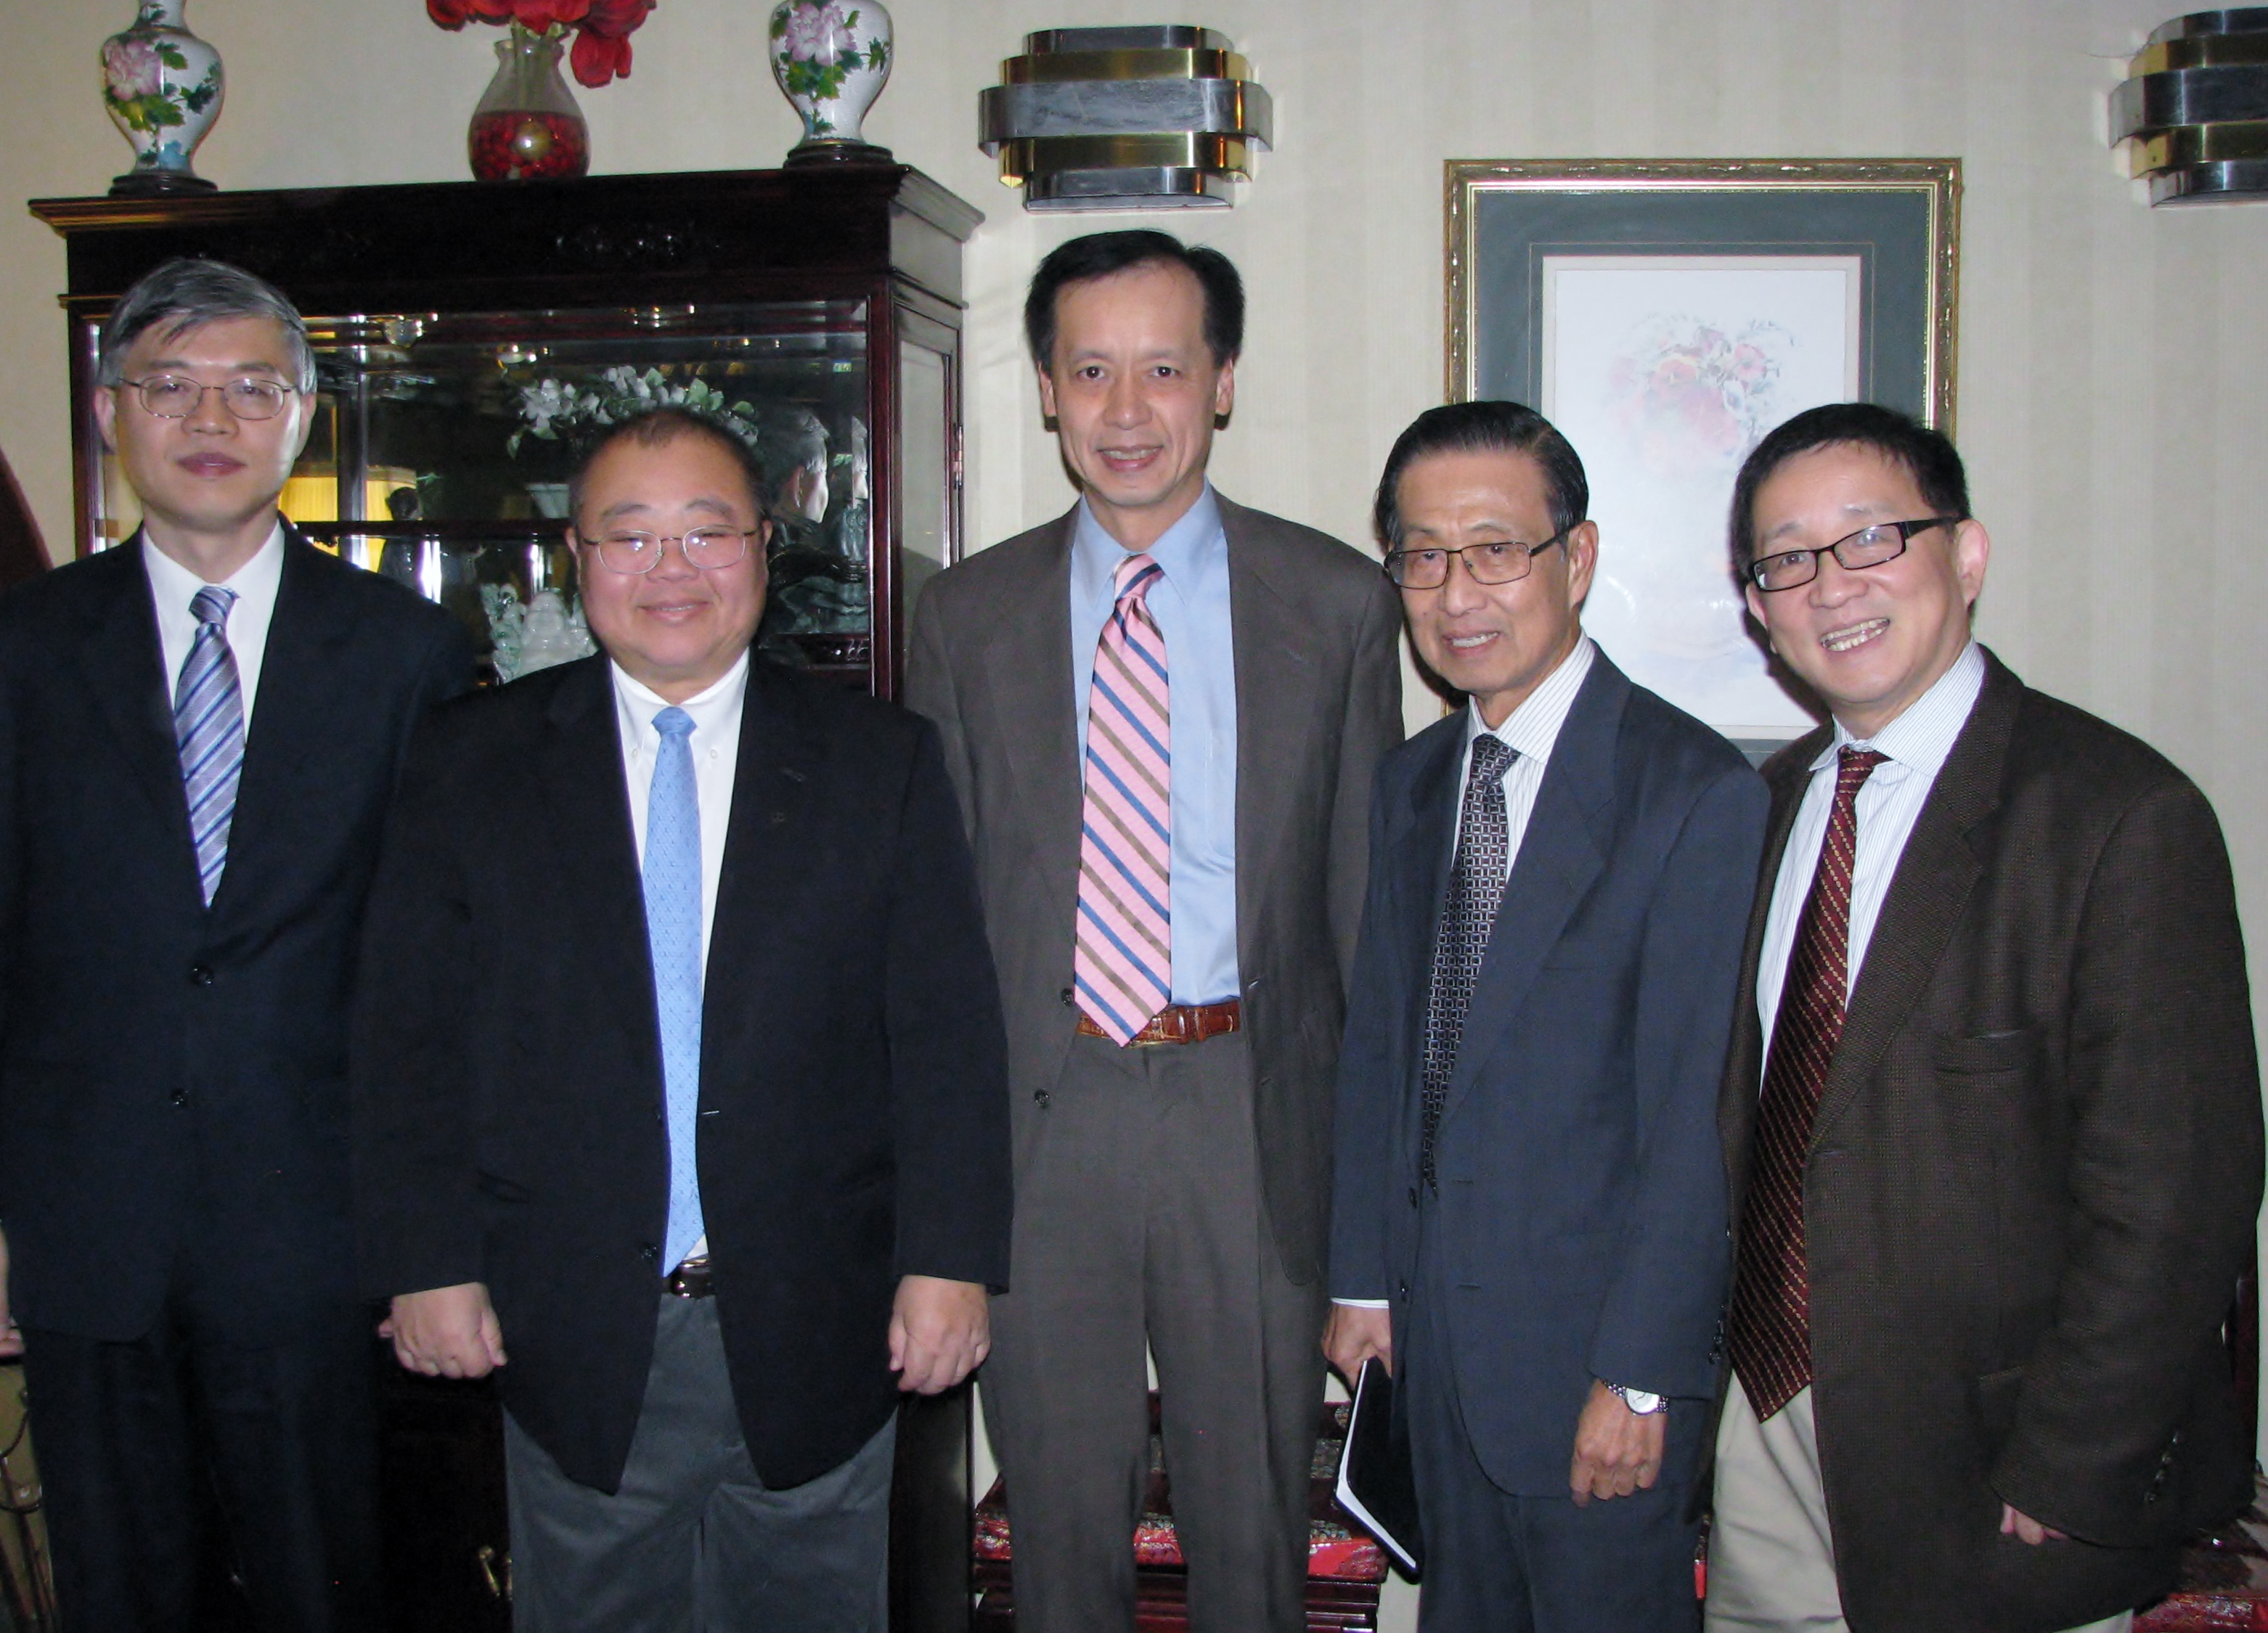 C-100 members Dali Yang, Jeremy Wu, Ben Wu, Michael Lin, and Cheng Li convene at C-100's Leadership Roundtable Dinner on November 17, 2014